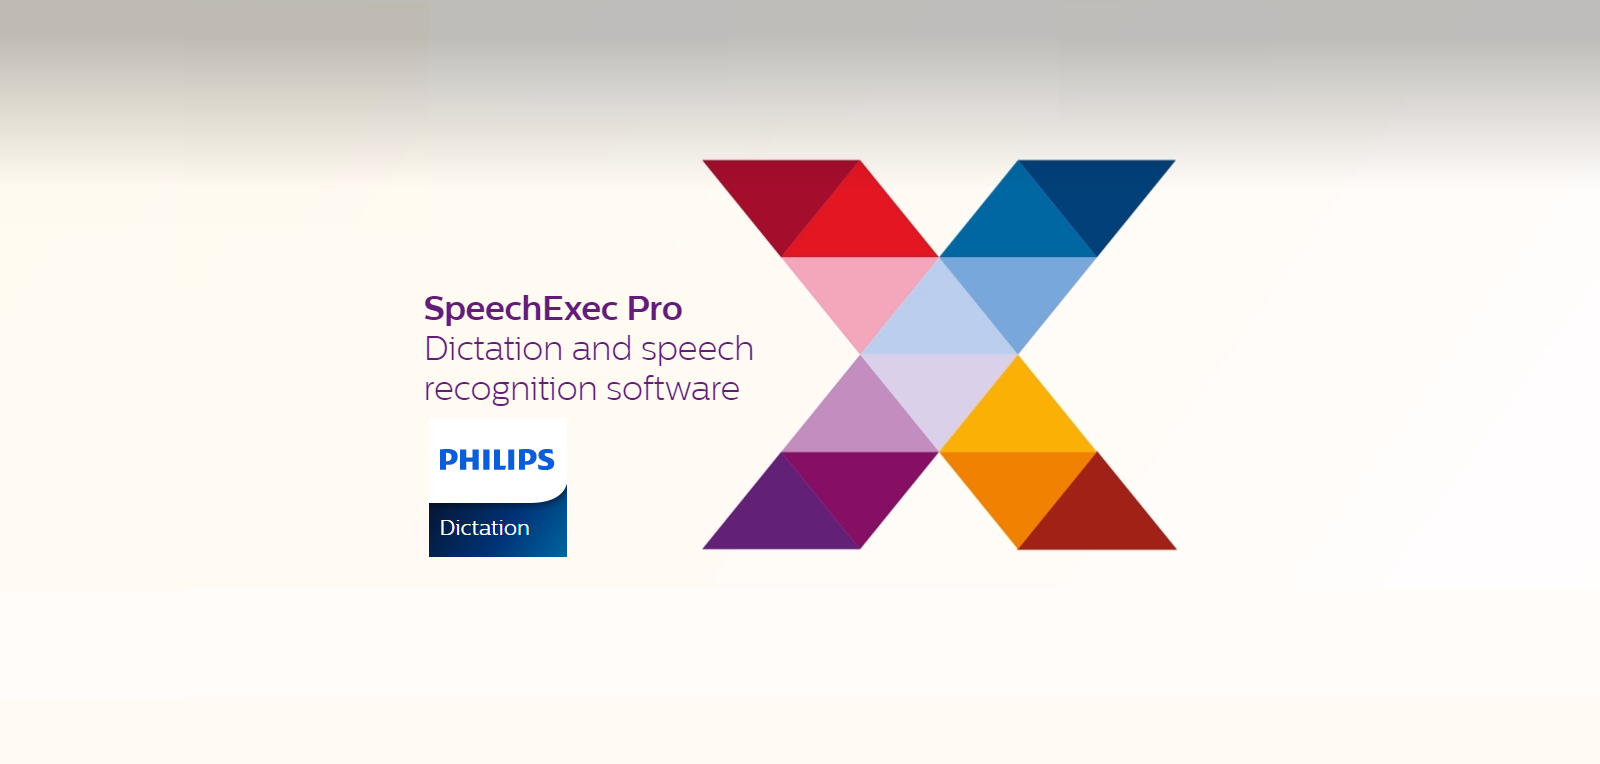 Philips Speech Exec Pro Dictation